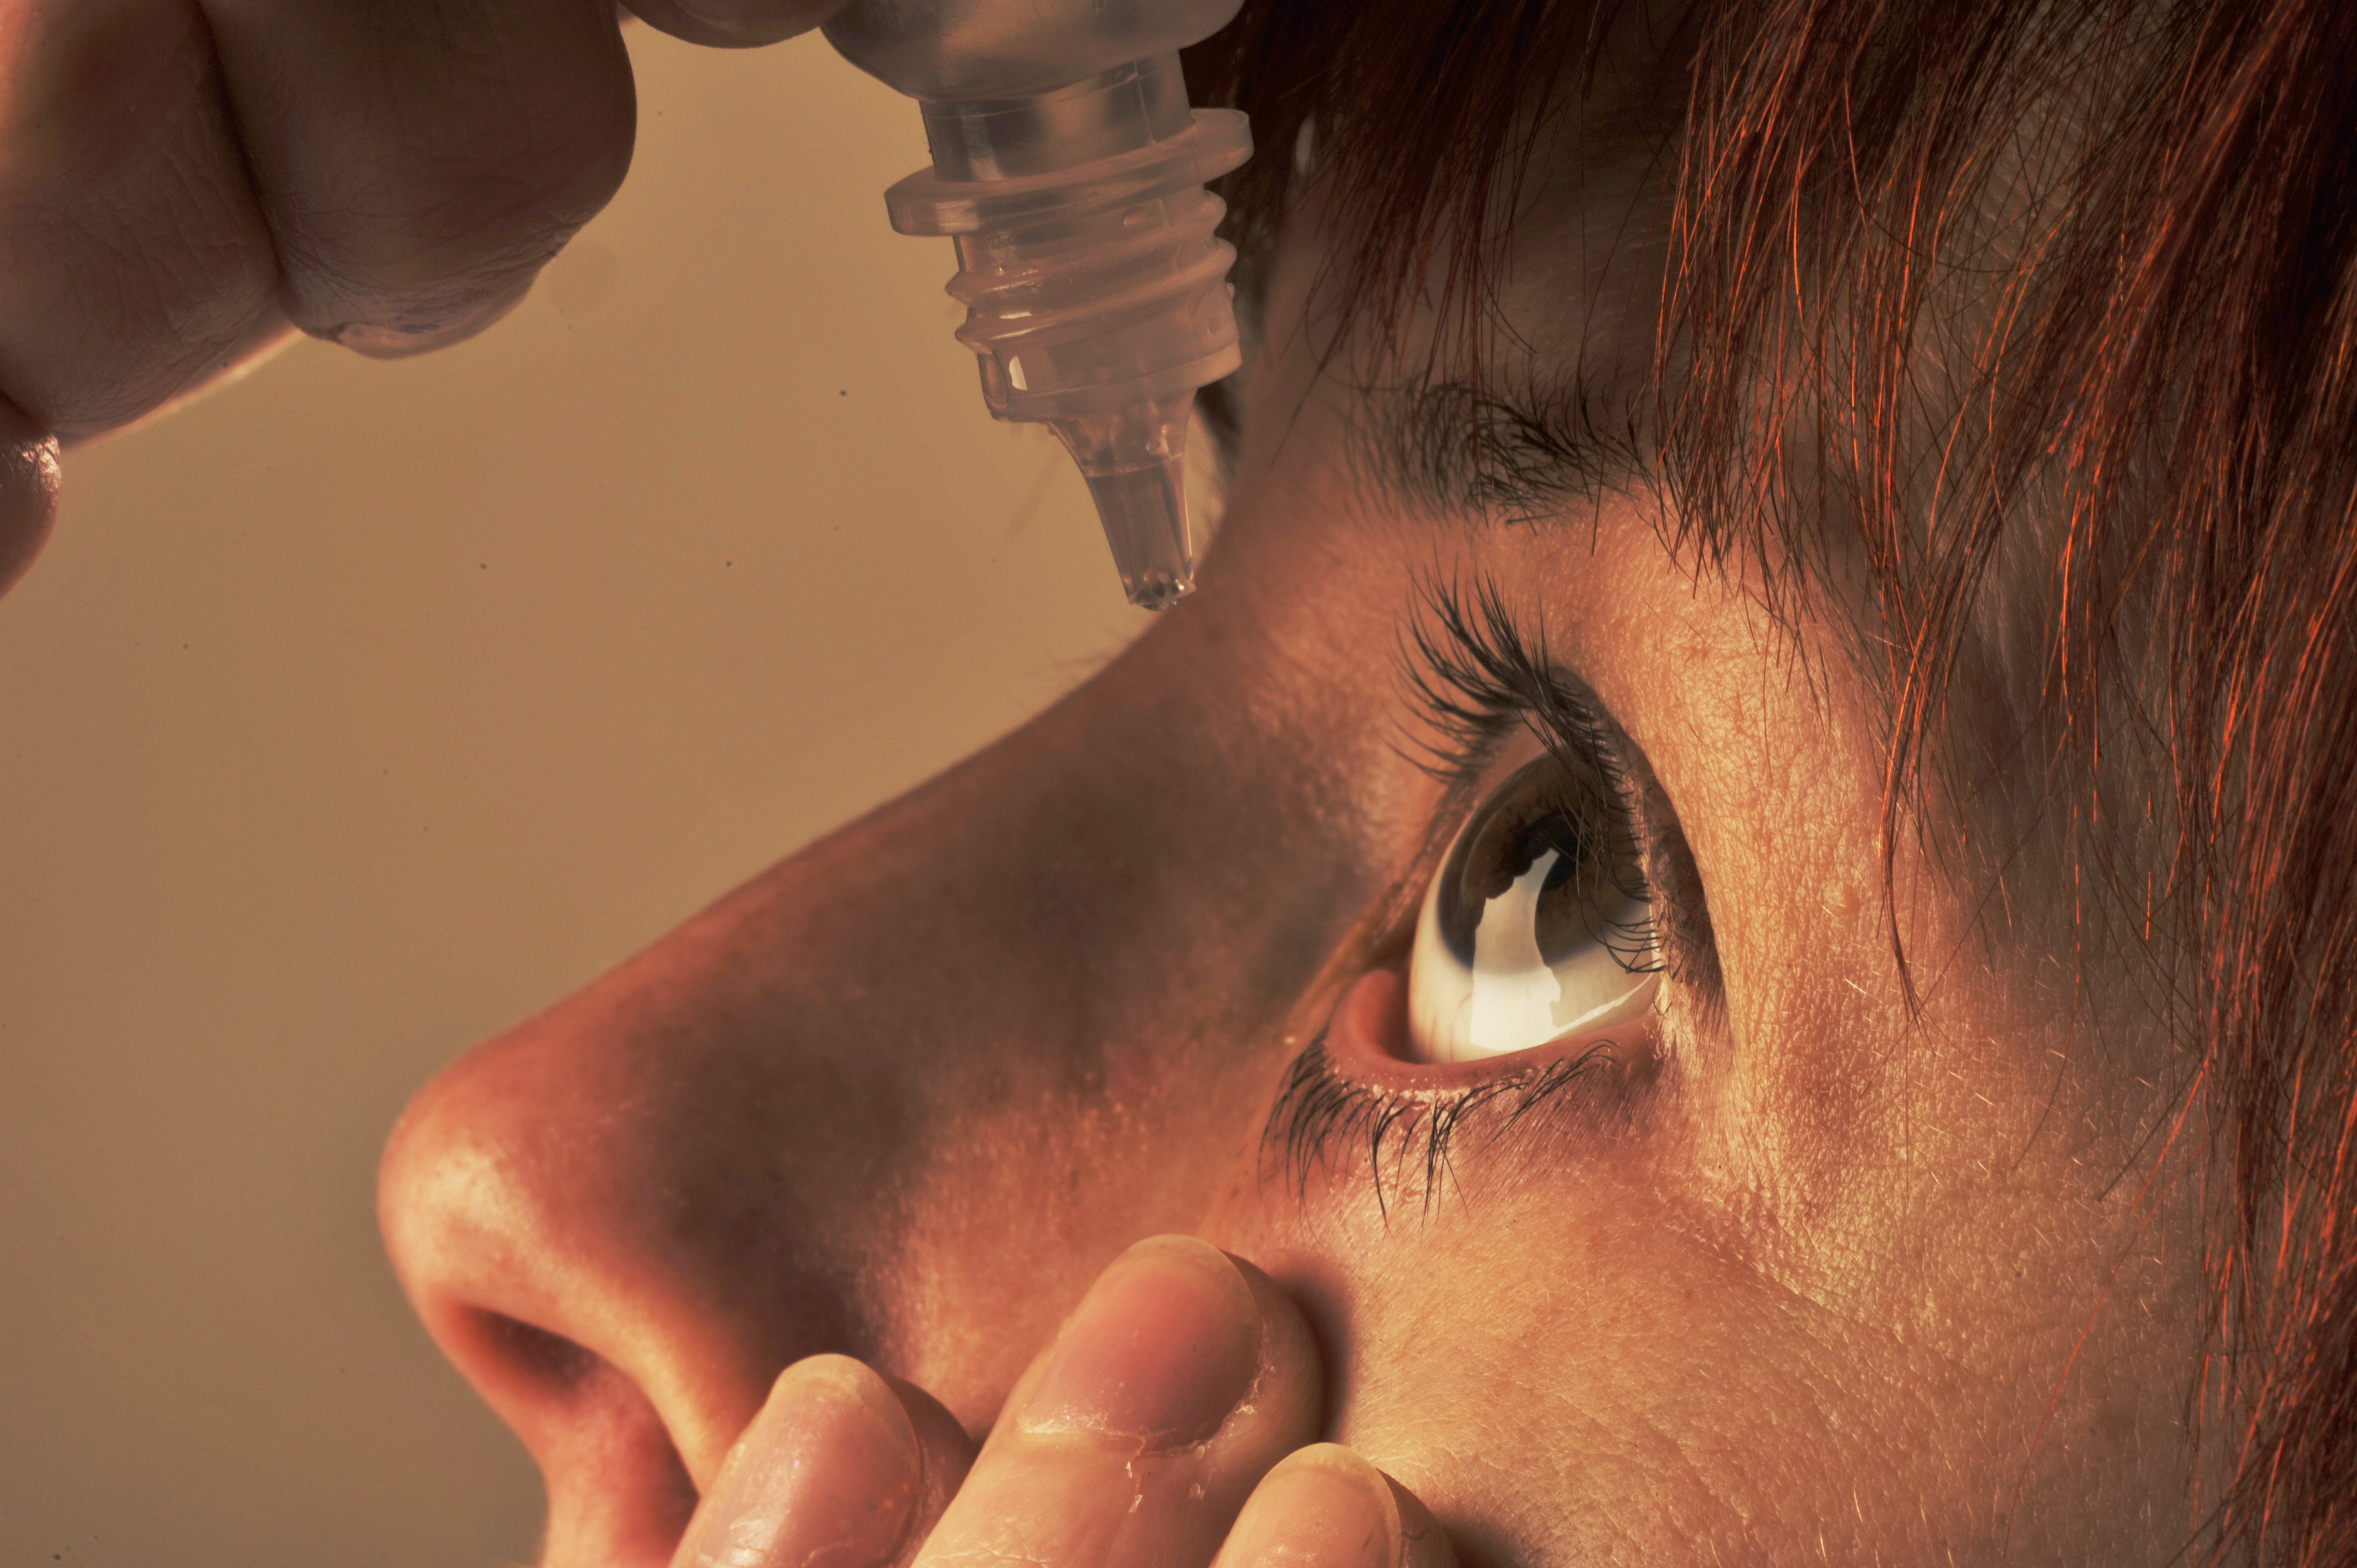 Using medicated eye drops can help with watery and itchy peepers. Credit: PA